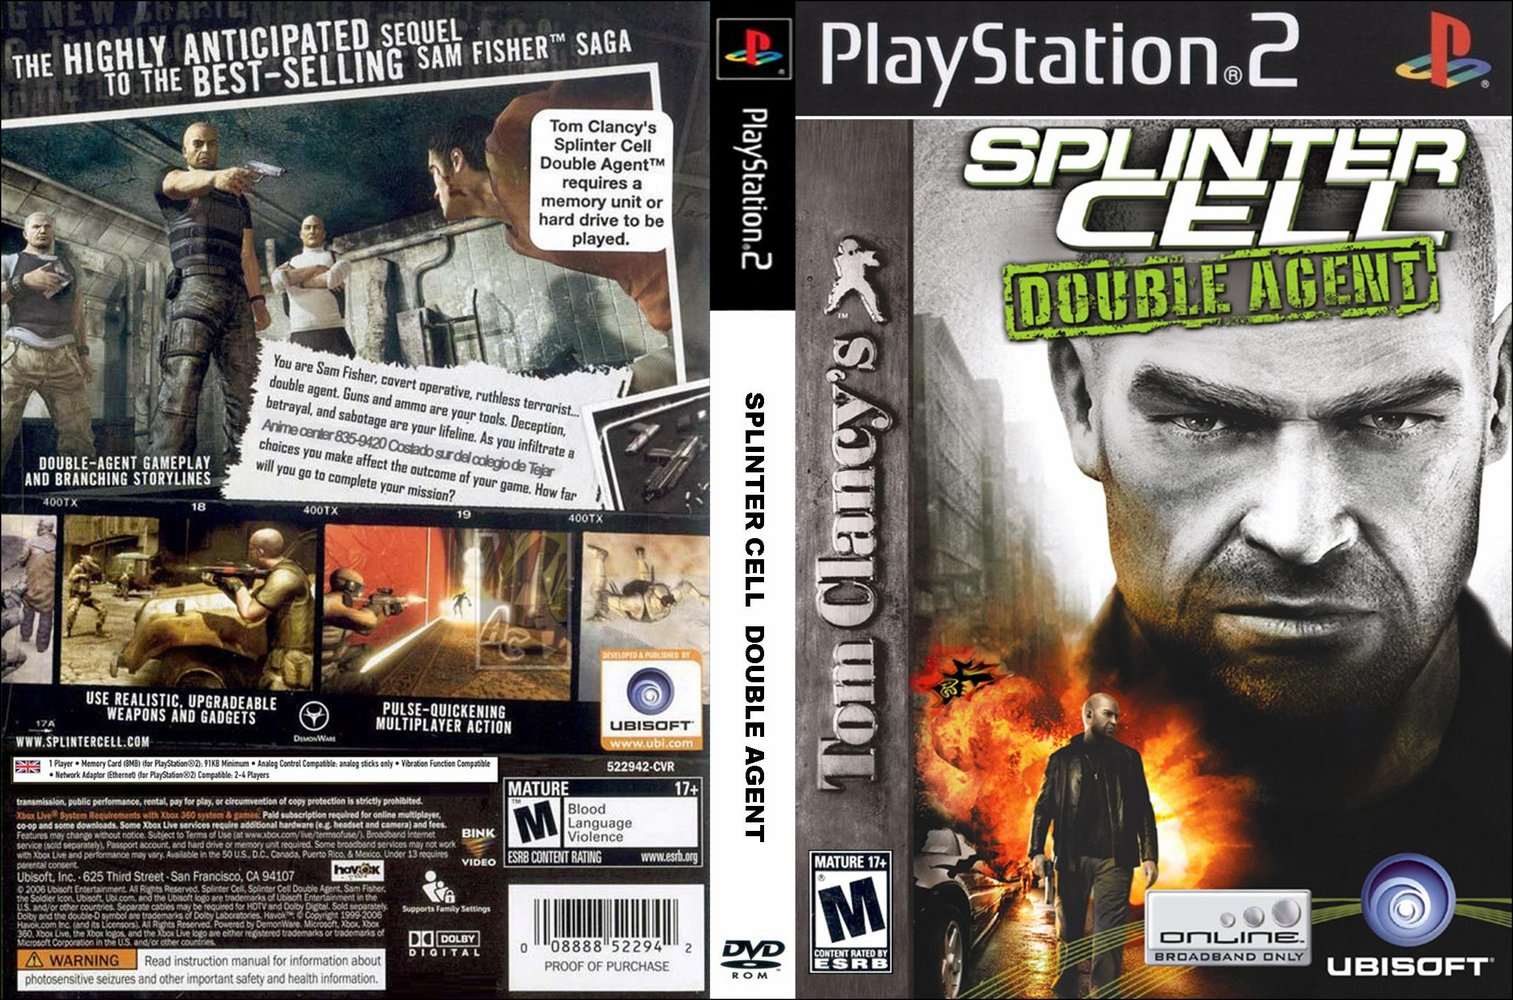 Baixar Torrent: Tom Clancys Splinter Cell Double Agent PS2 - 2,46 GB